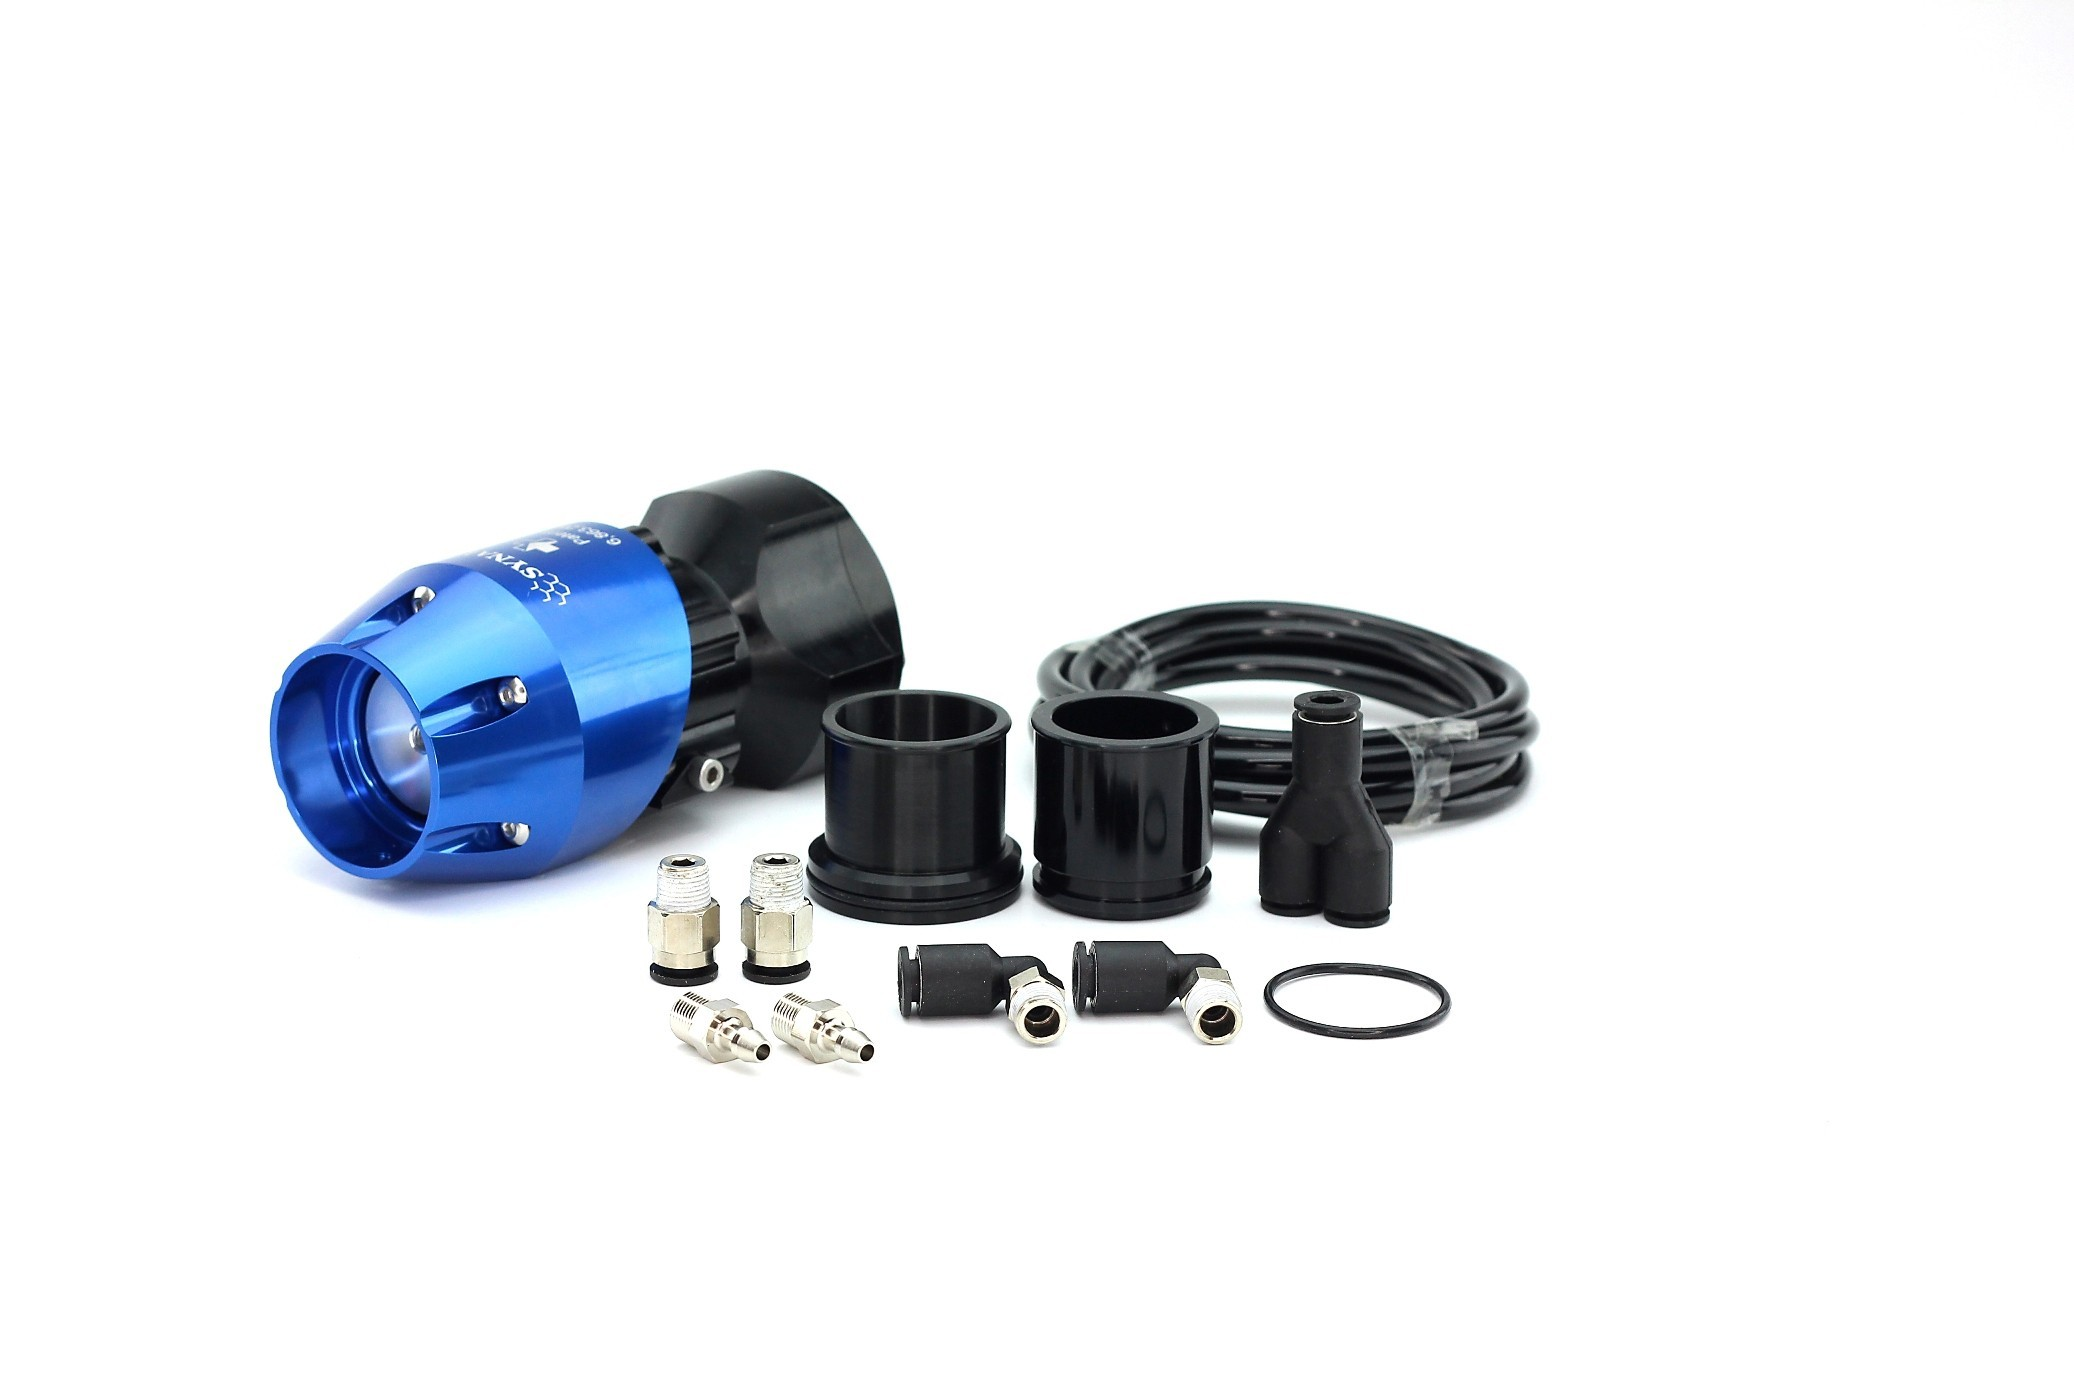 Mitsubishi Eclipse GST/GSX 1995-1999, Evo 6 and Eagle Talon TSi 1995-1999 Synchronic BOV Kit Blue/Black BOV